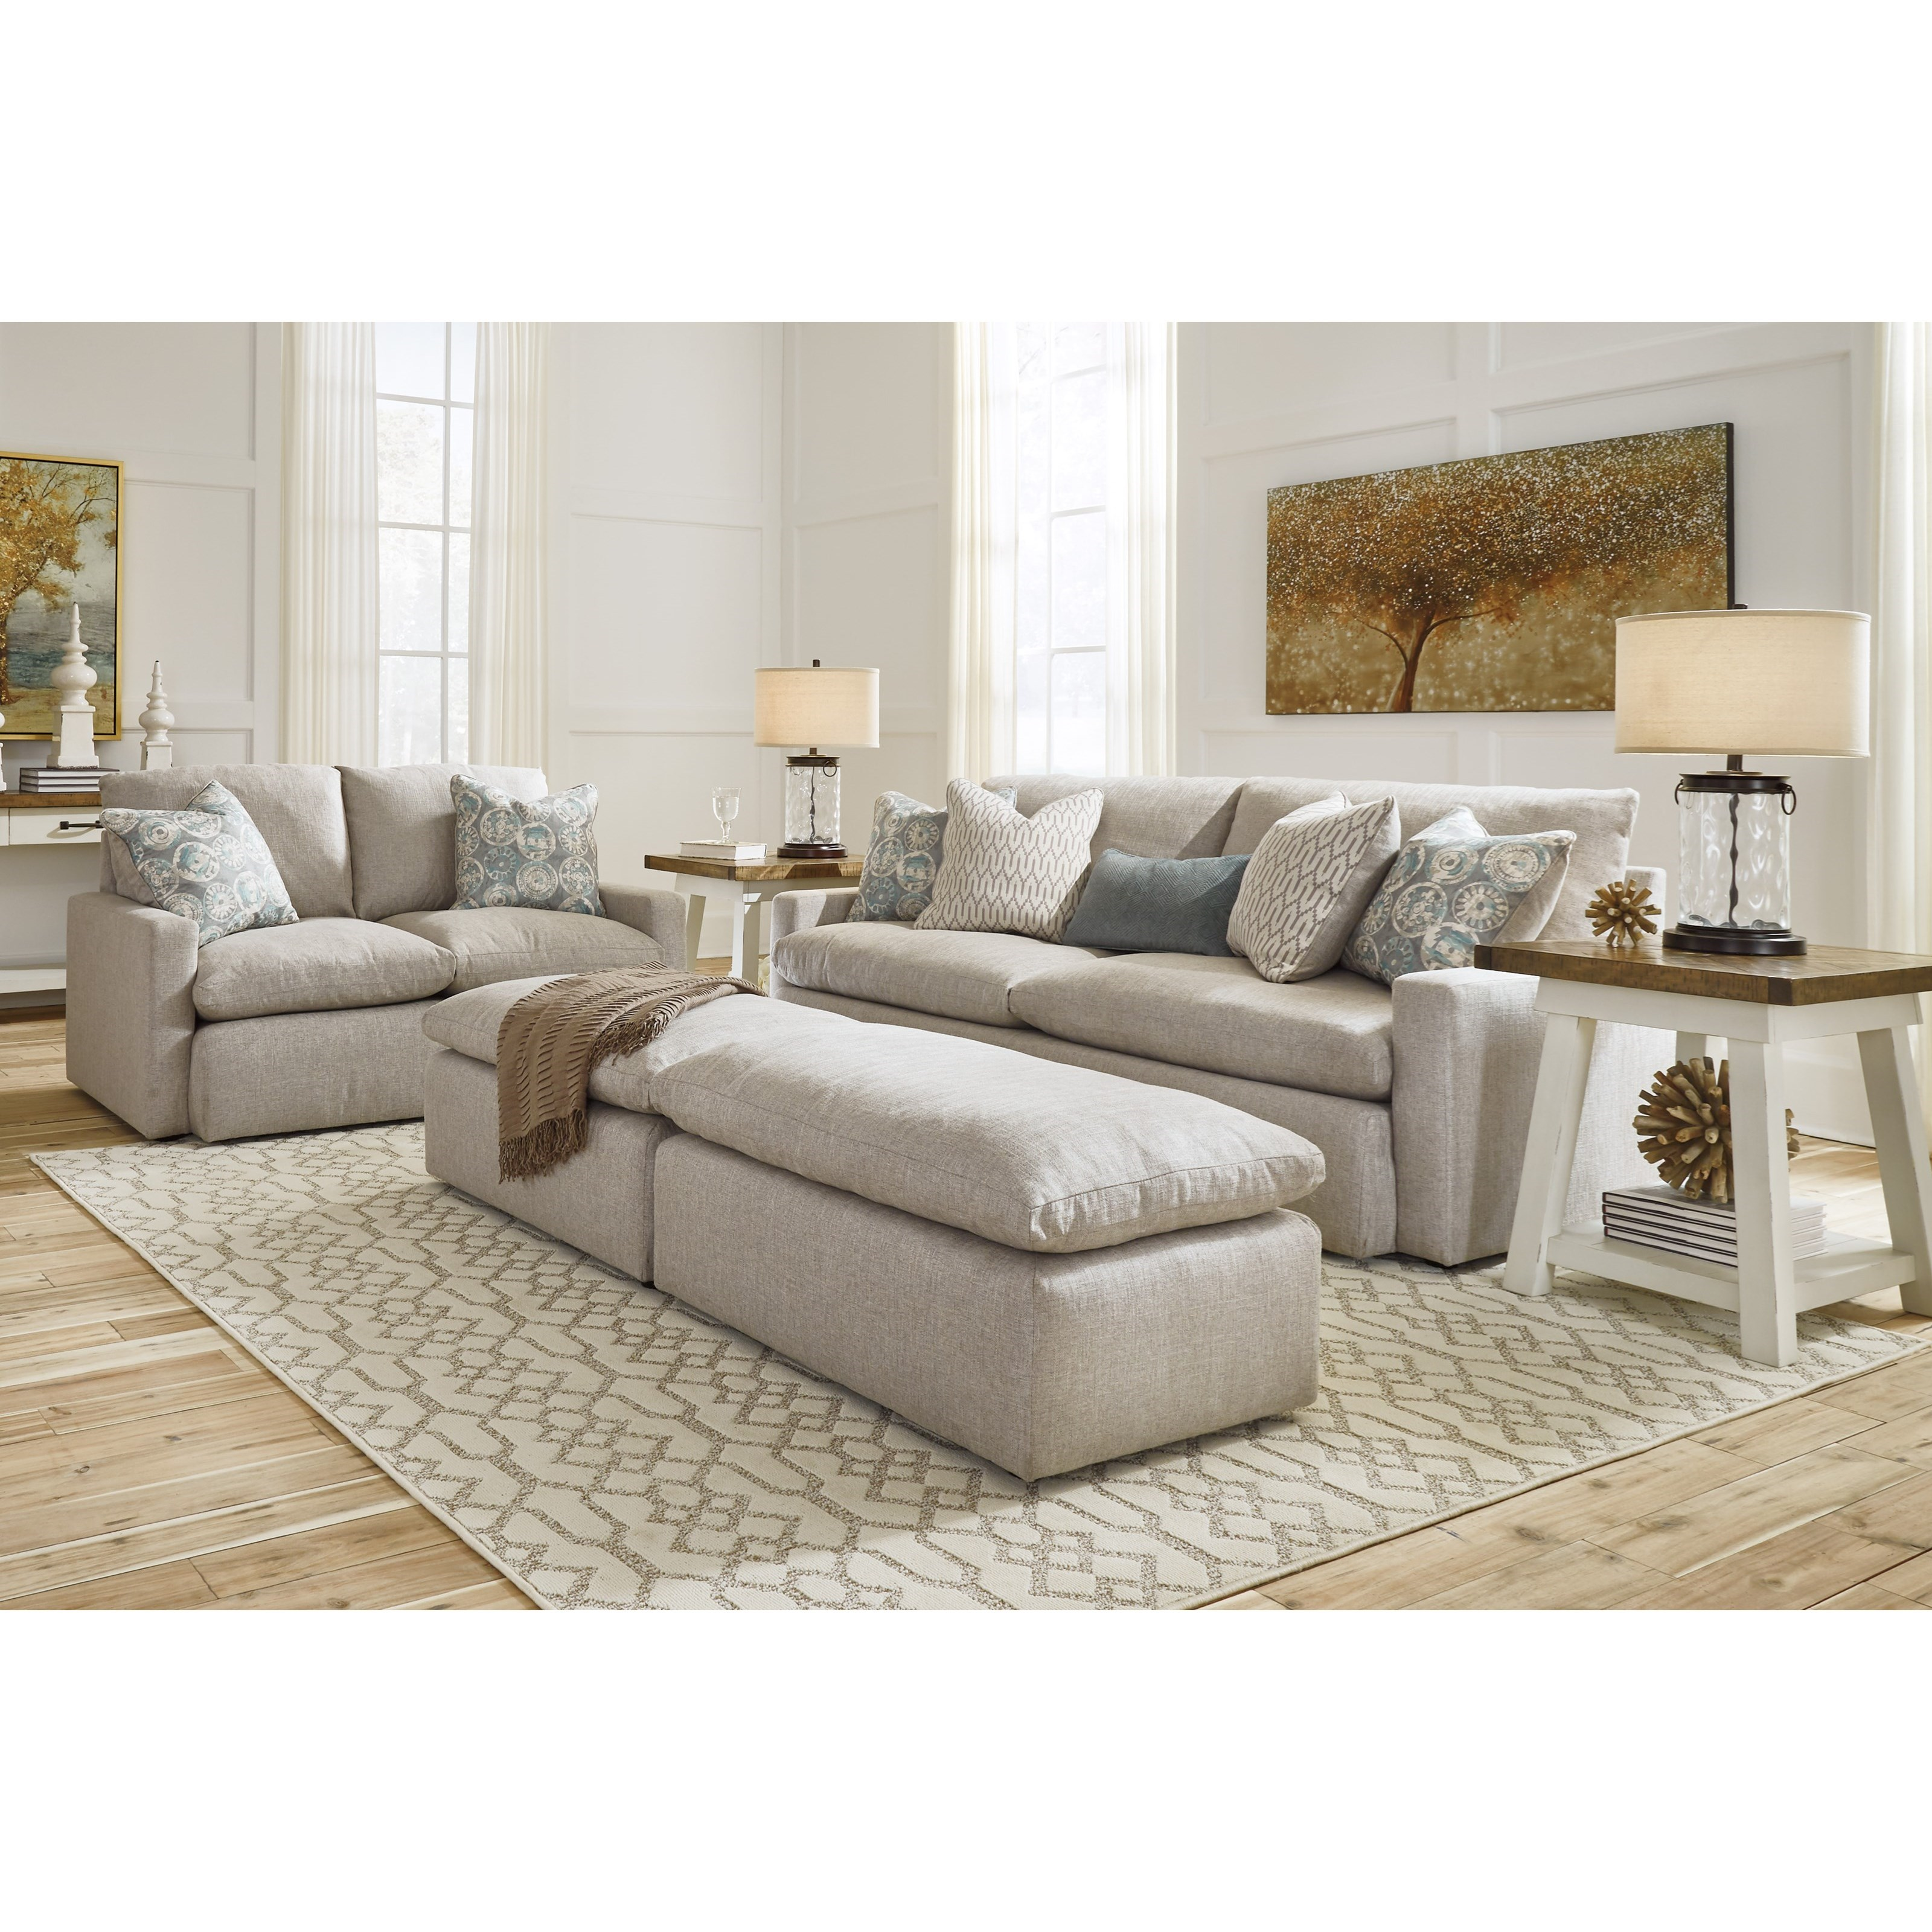 pit sectional sofa uk nubuck leather reviews melilla with 2 accent ottomans becker